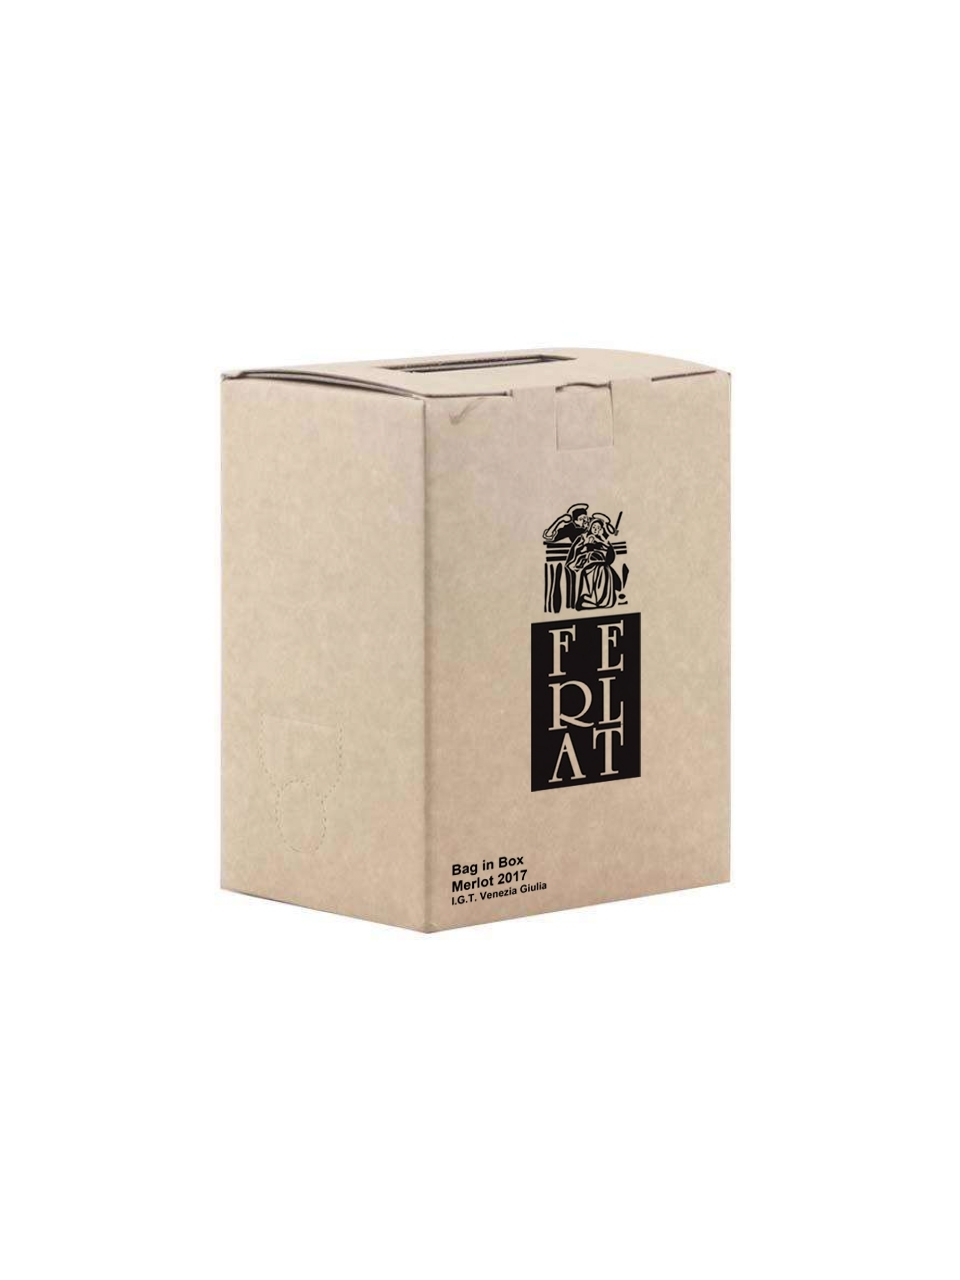 Merlot IGT Venezia Giulia 2018 - Bag-In-Box